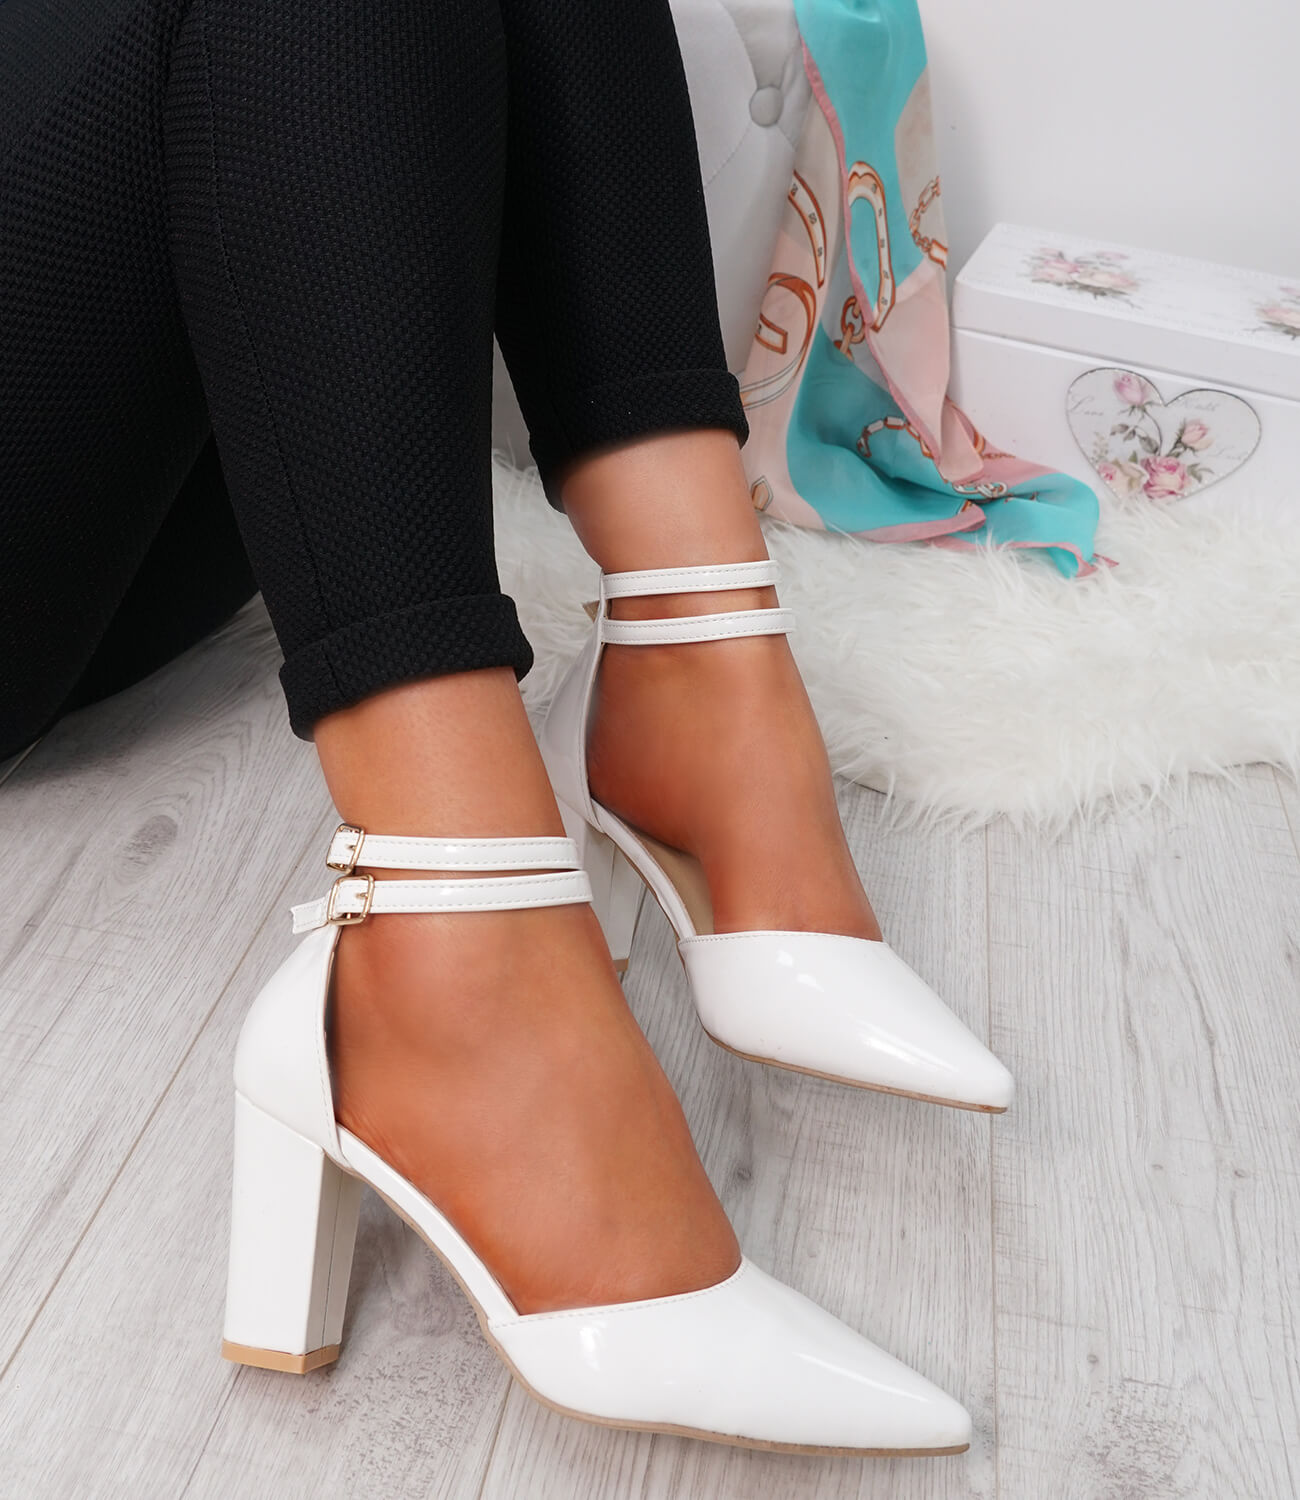 WOMENS-LADIES-ANKLE-DOUBLE-STRAP-HIGH-BLOCK-HEEL-POINTED-TOE-PARTY-SHOES-SIZE thumbnail 19